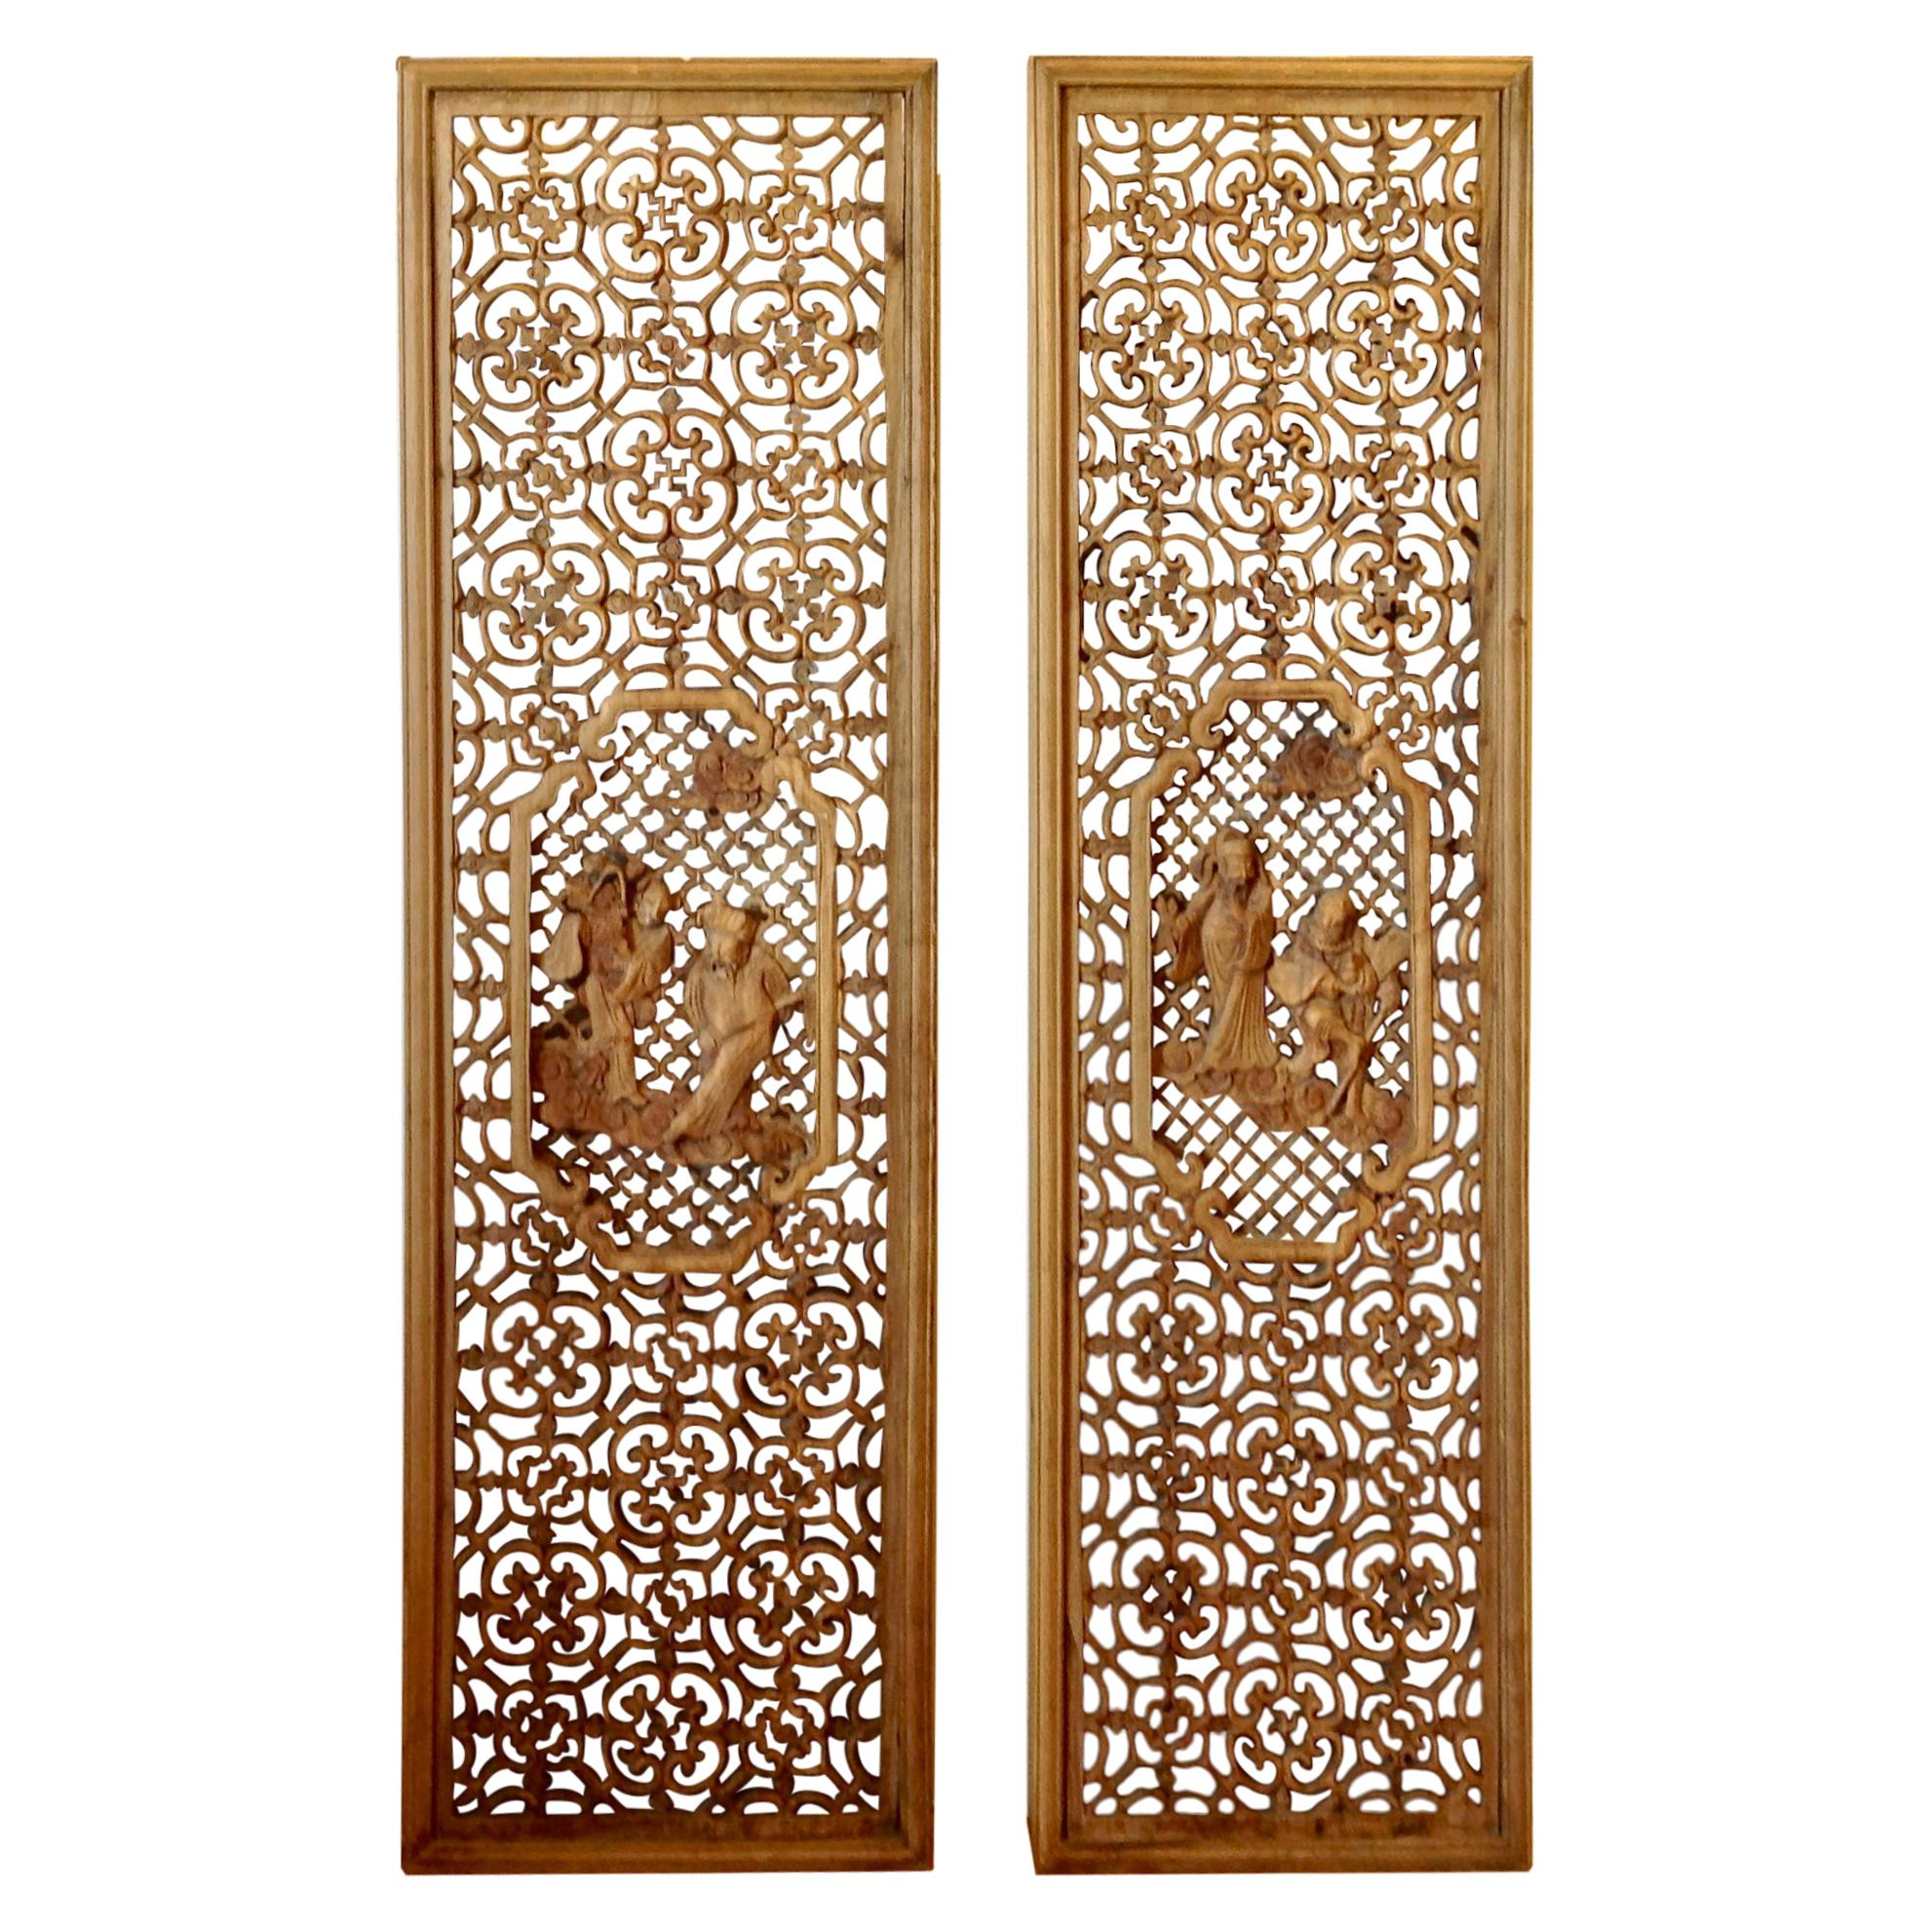 Pair of Chinese Carved Wall Panels